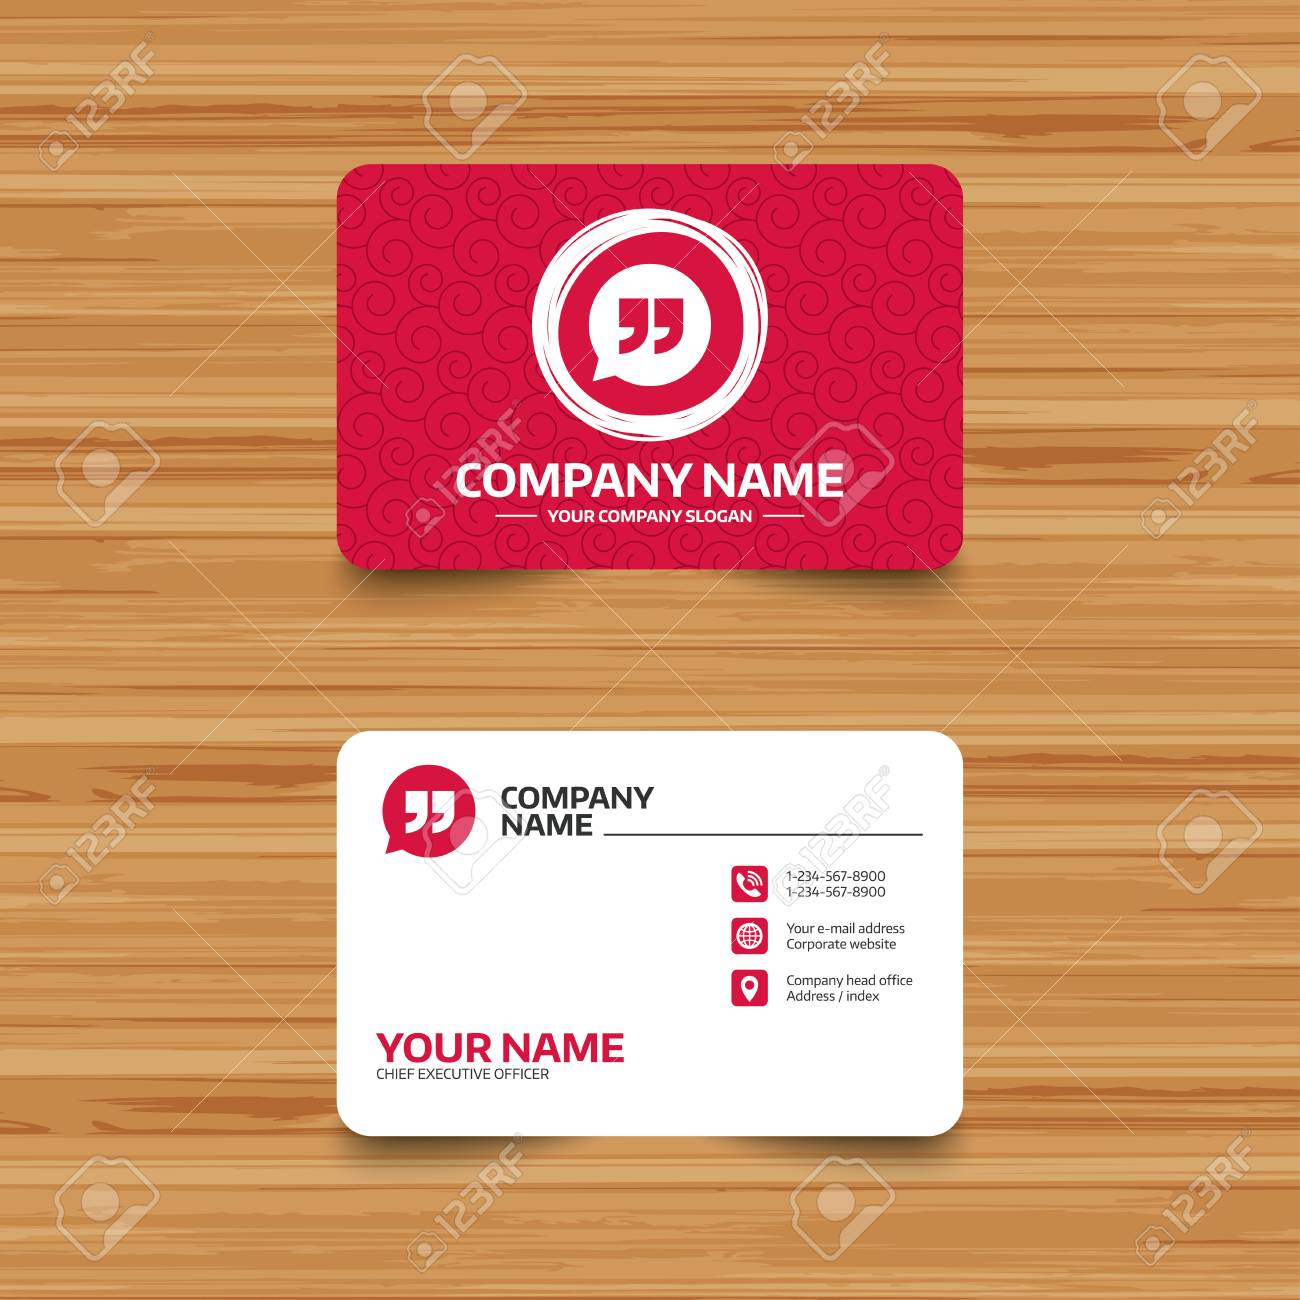 Business card template with texture quote sign icon quotation business card template with texture quote sign icon quotation mark in speech bubble symbol reheart Images